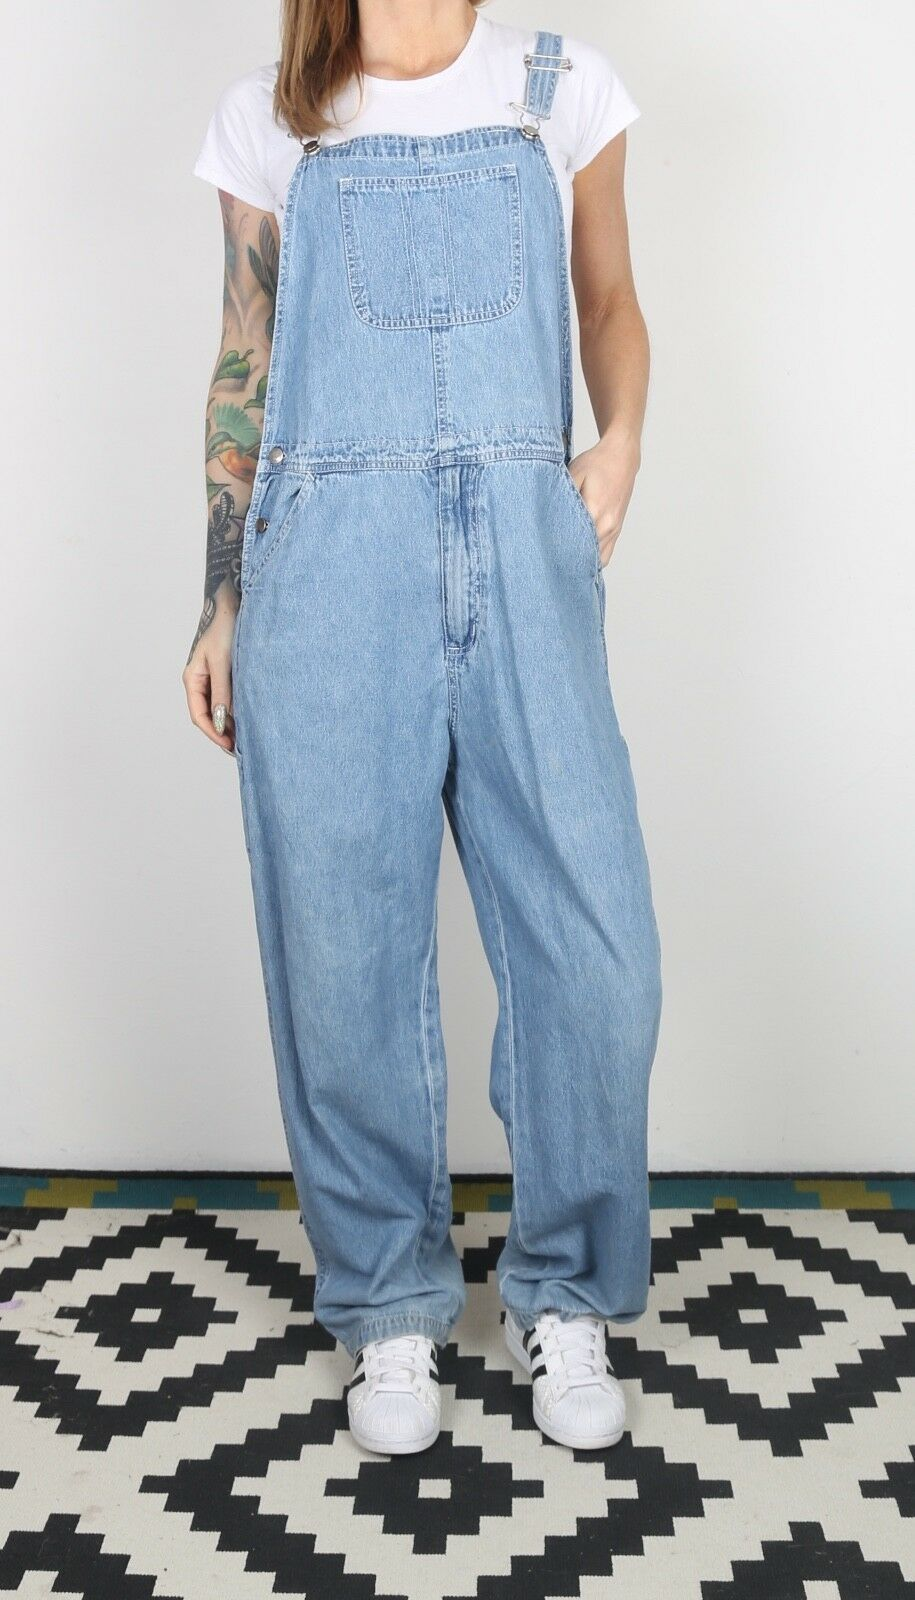 Denim Dungarees Medium Fitted  10 Small Oversized Wide Leg  (X2F)